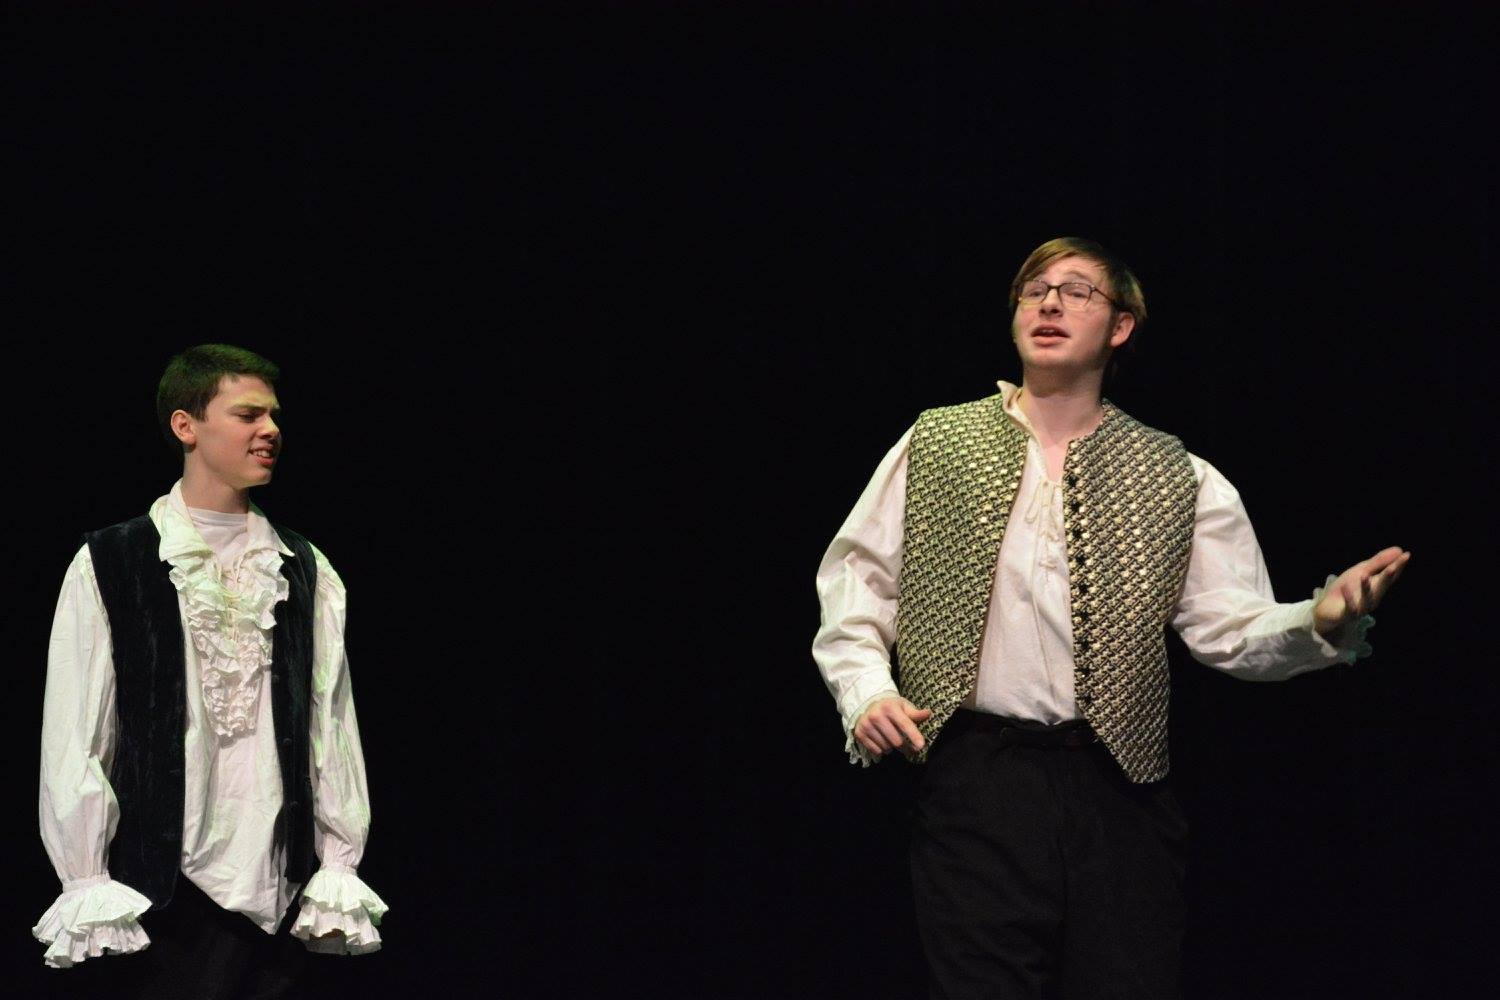 9th+grader+Henry+Vliestra+and+senior+Bailey+Troth+perform+in+the+Shakespearean+spoof+One+Act+on+Jan.+27.